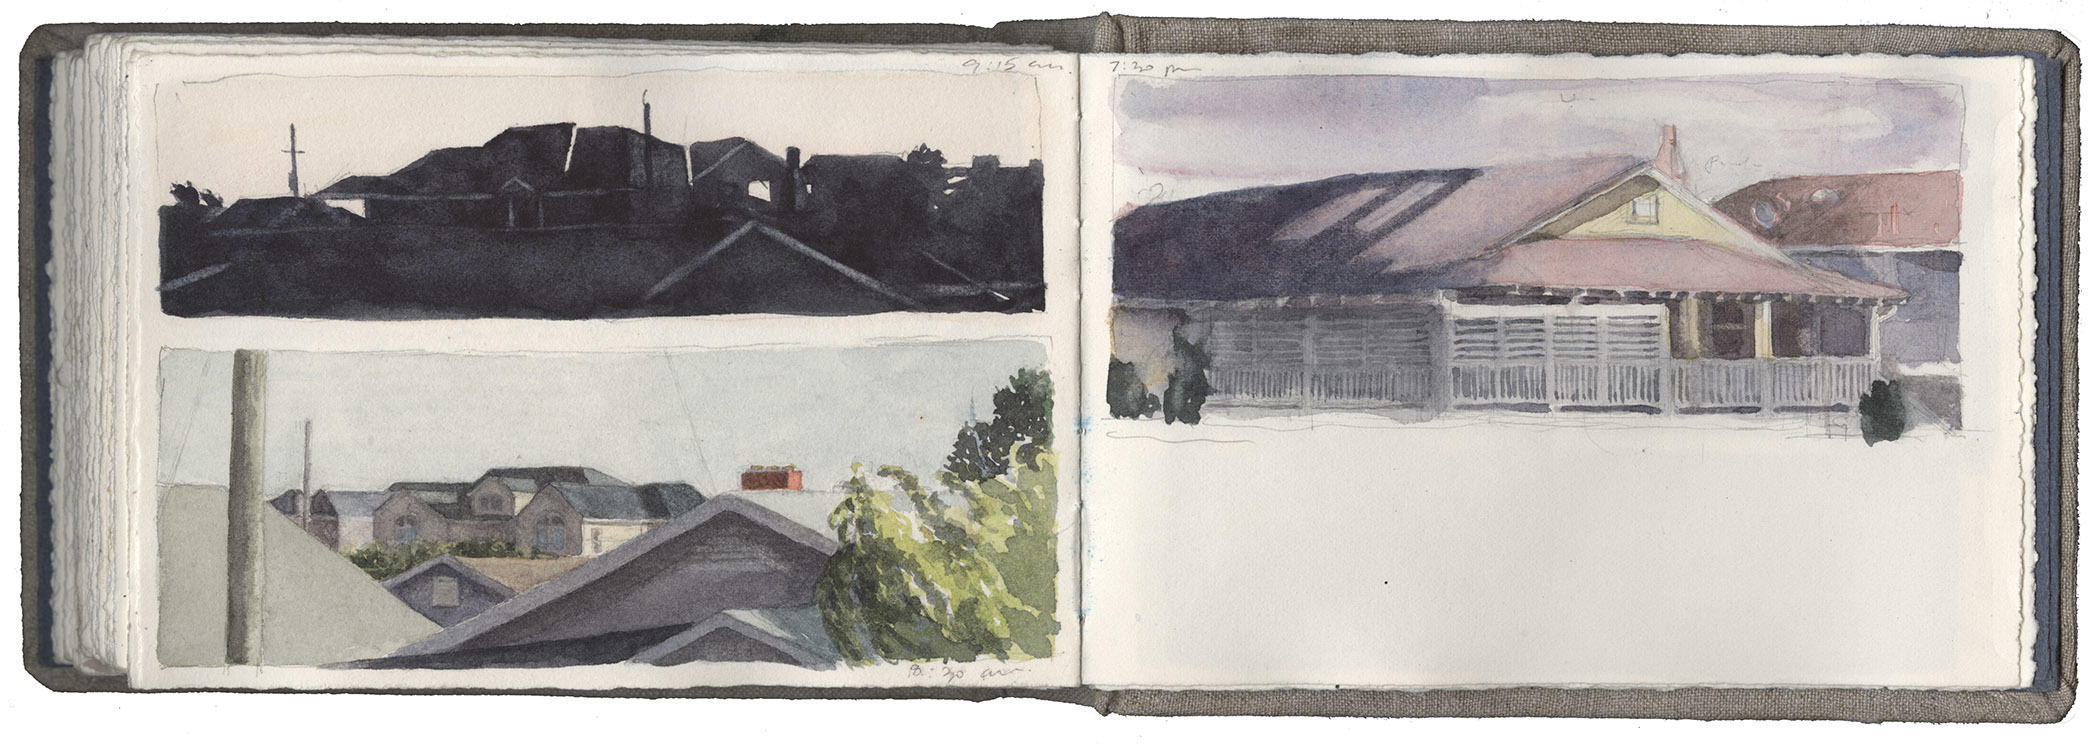 Studies of Beach Houses image